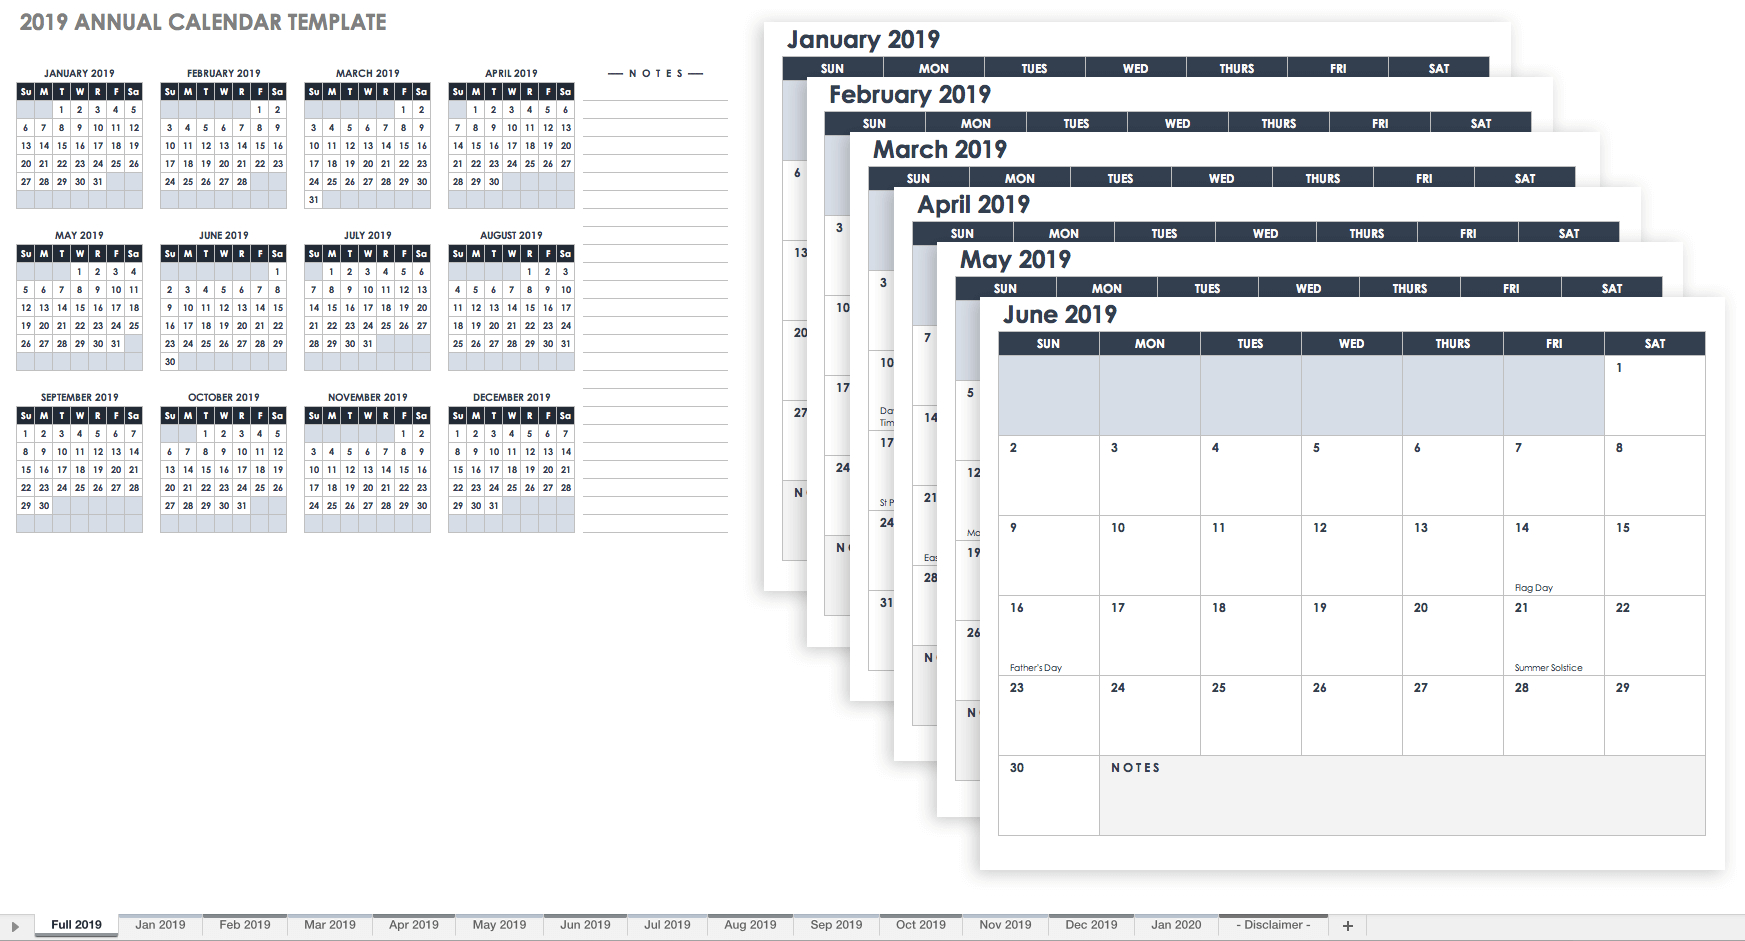 15 Free Monthly Calendar Templates | Smartsheet throughout Blank Printable Calendar By Month With Notes